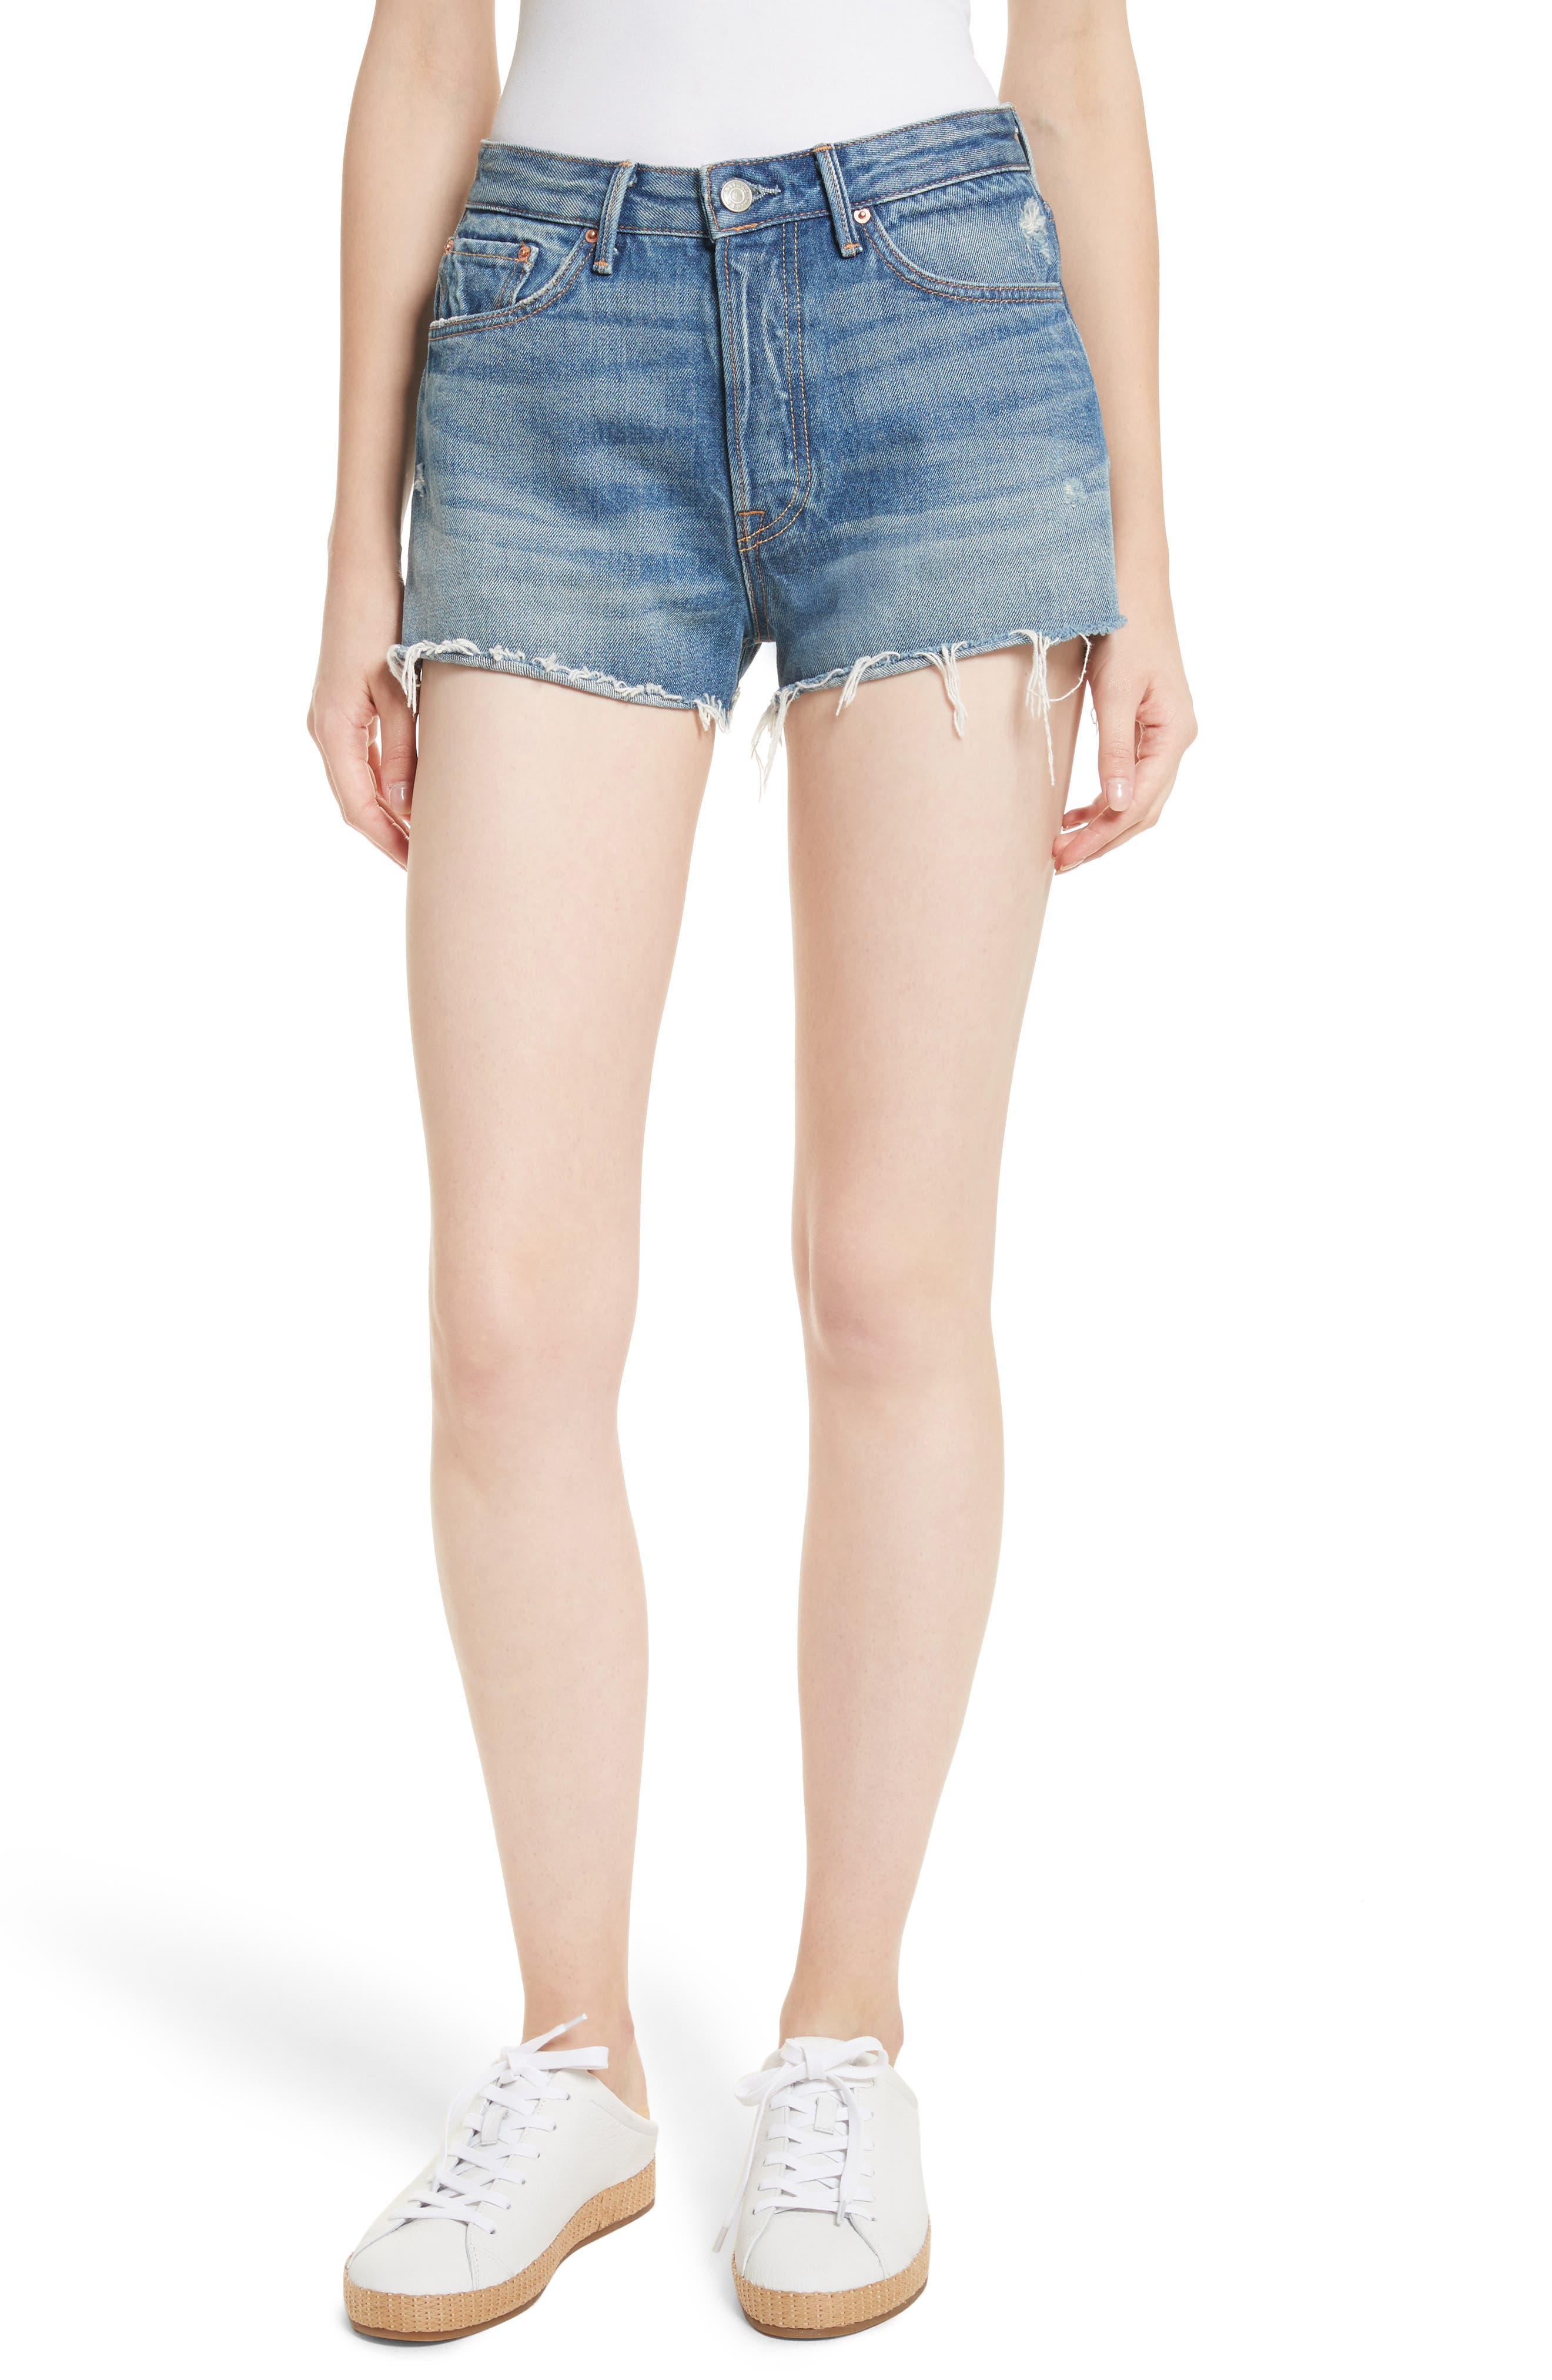 Alternate Image 1 Selected - GRLFRND Cindy Rigid High Waist Denim Shorts (Nobody Does It Better)